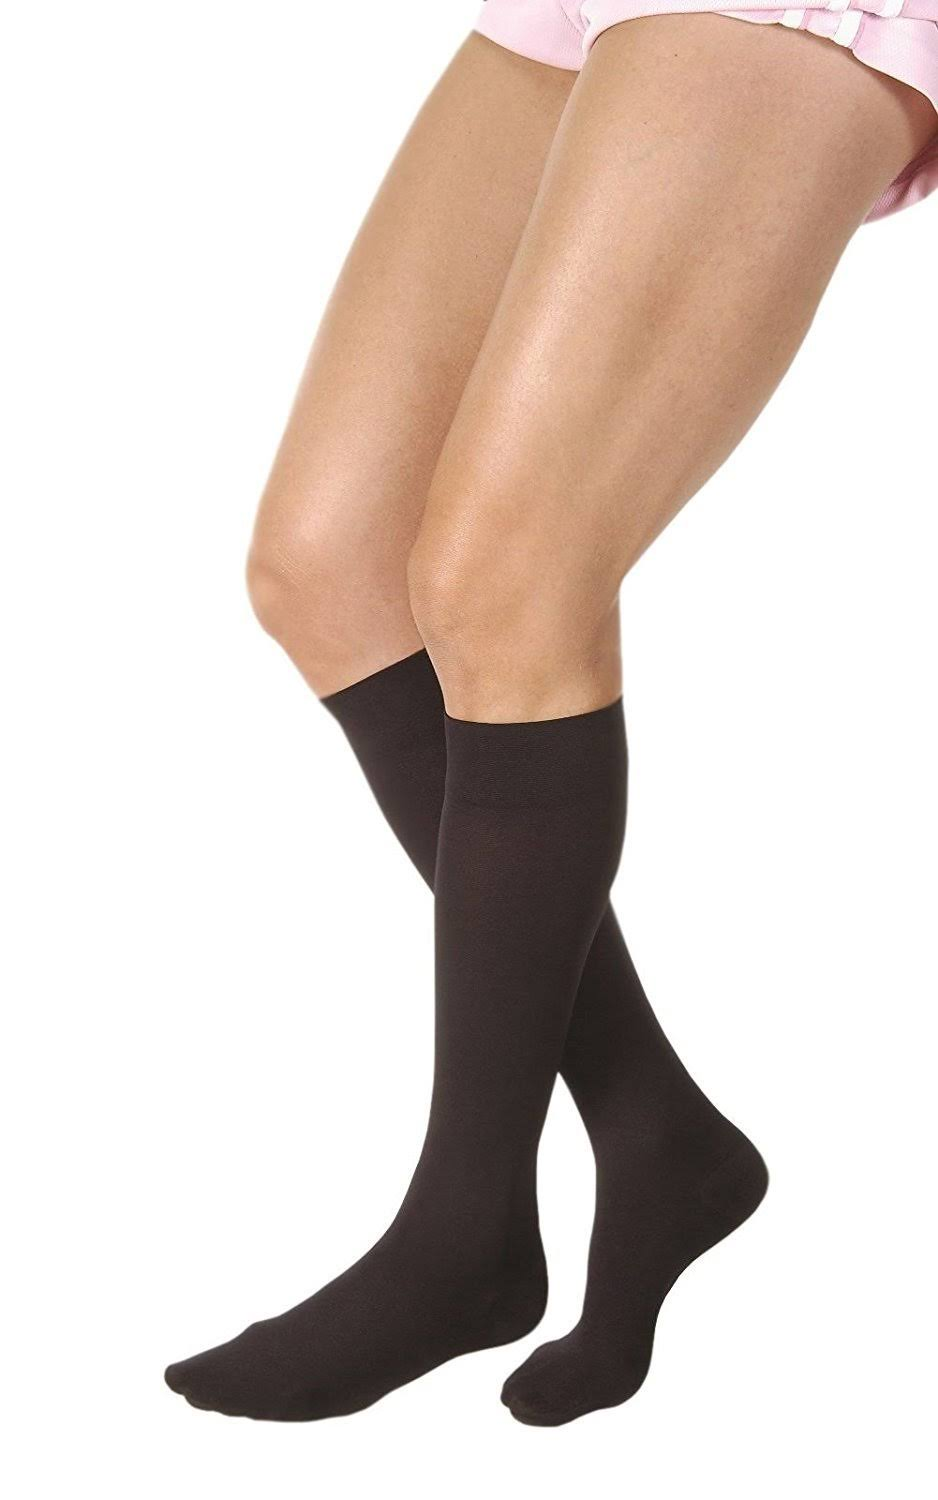 Jobst Relief 15-20 mmHg Knee High Large Black